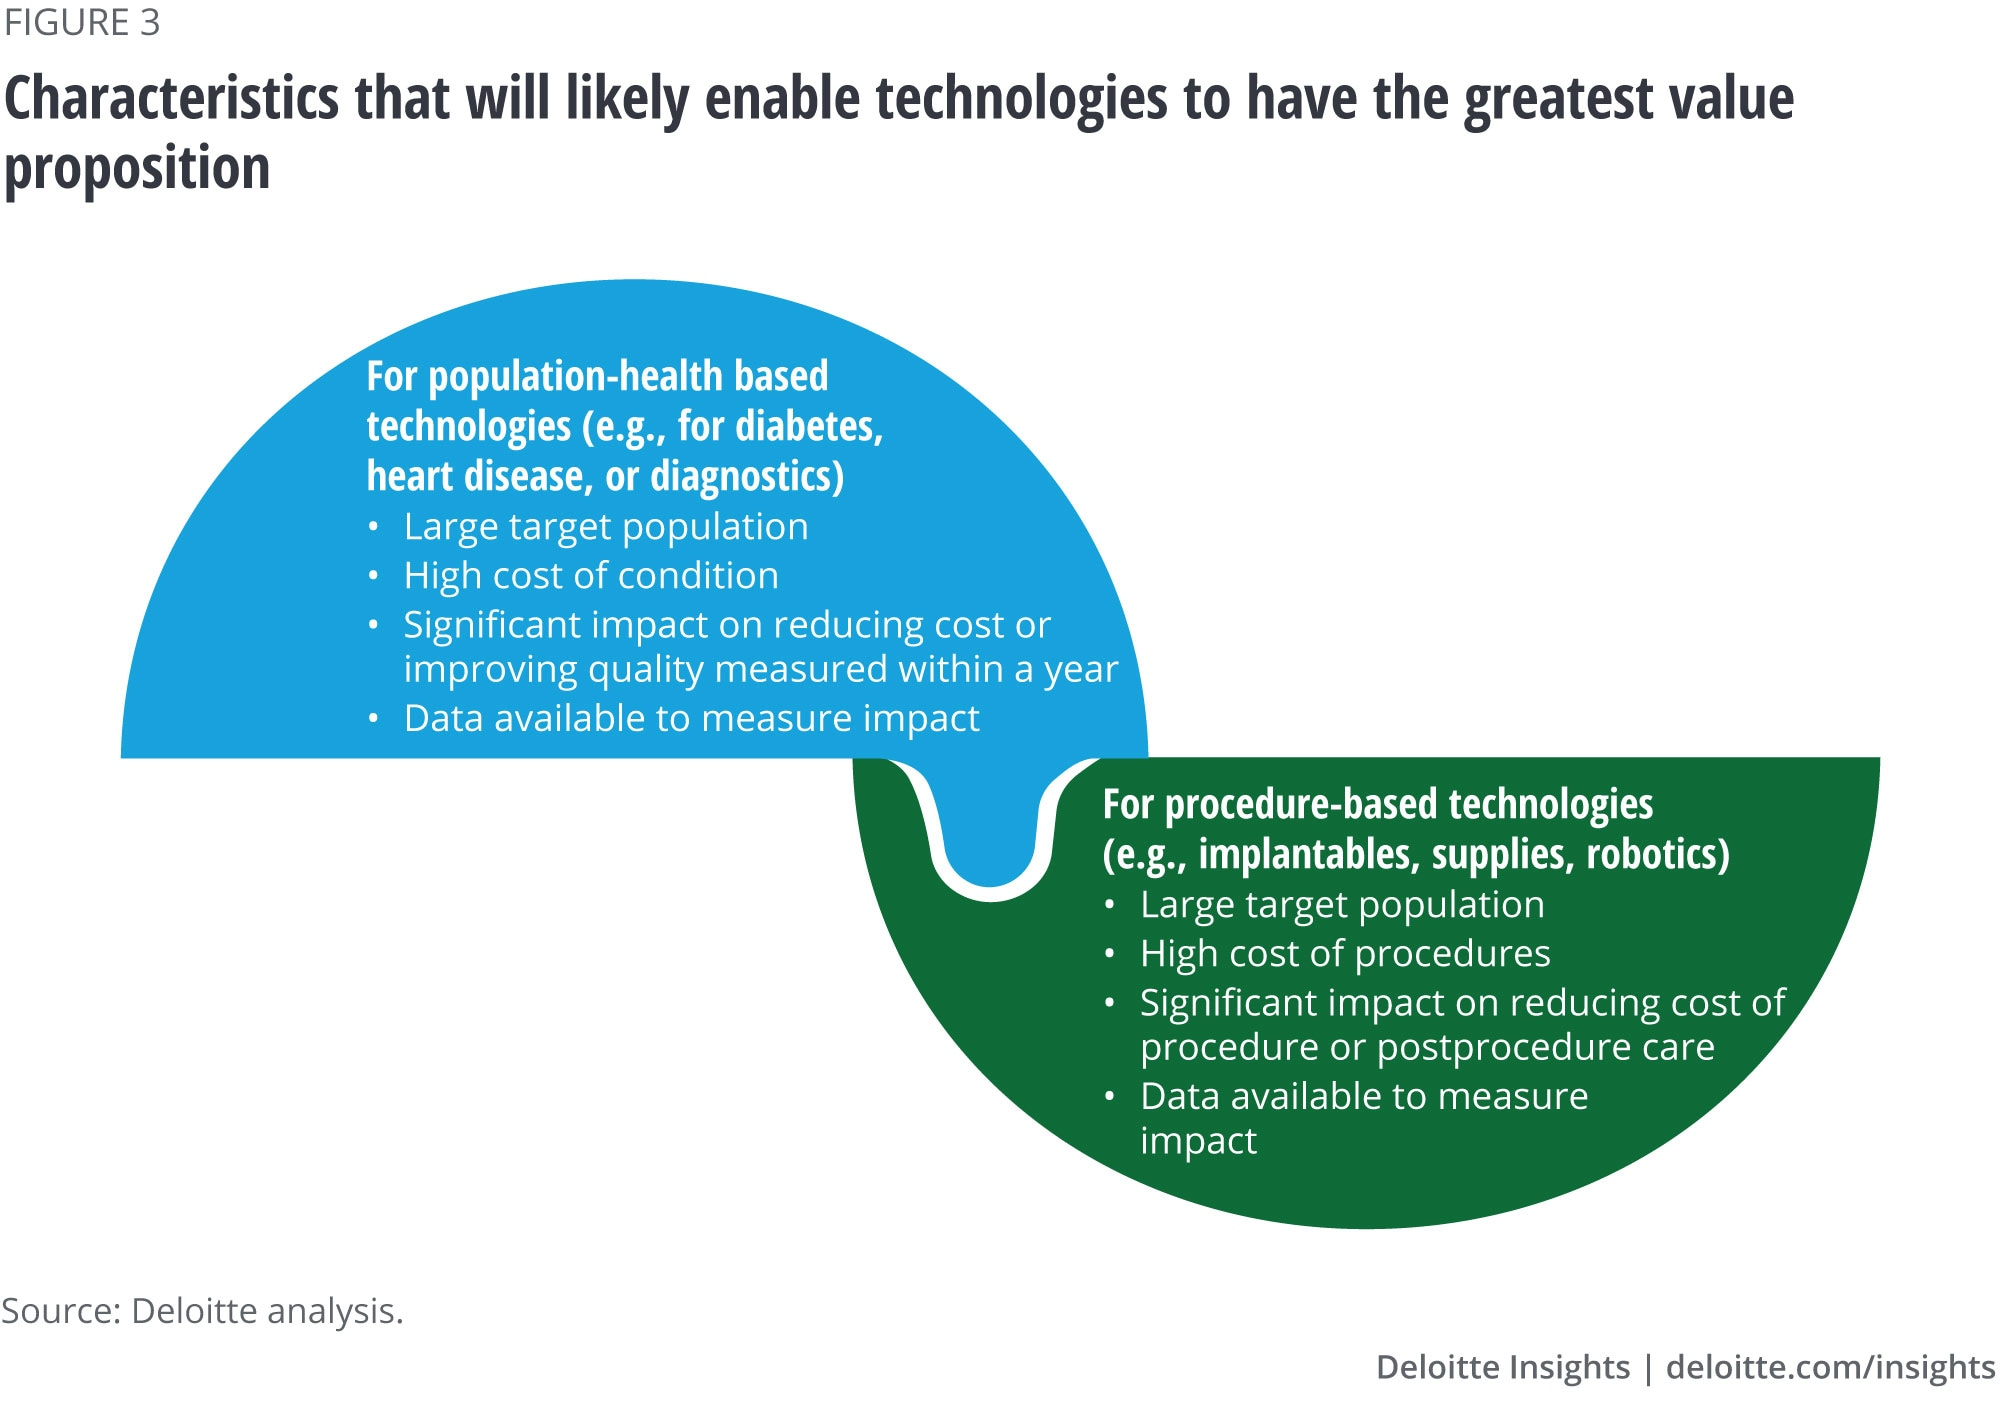 Technologies will likely have the greatest value proposition if they have certain characteristics